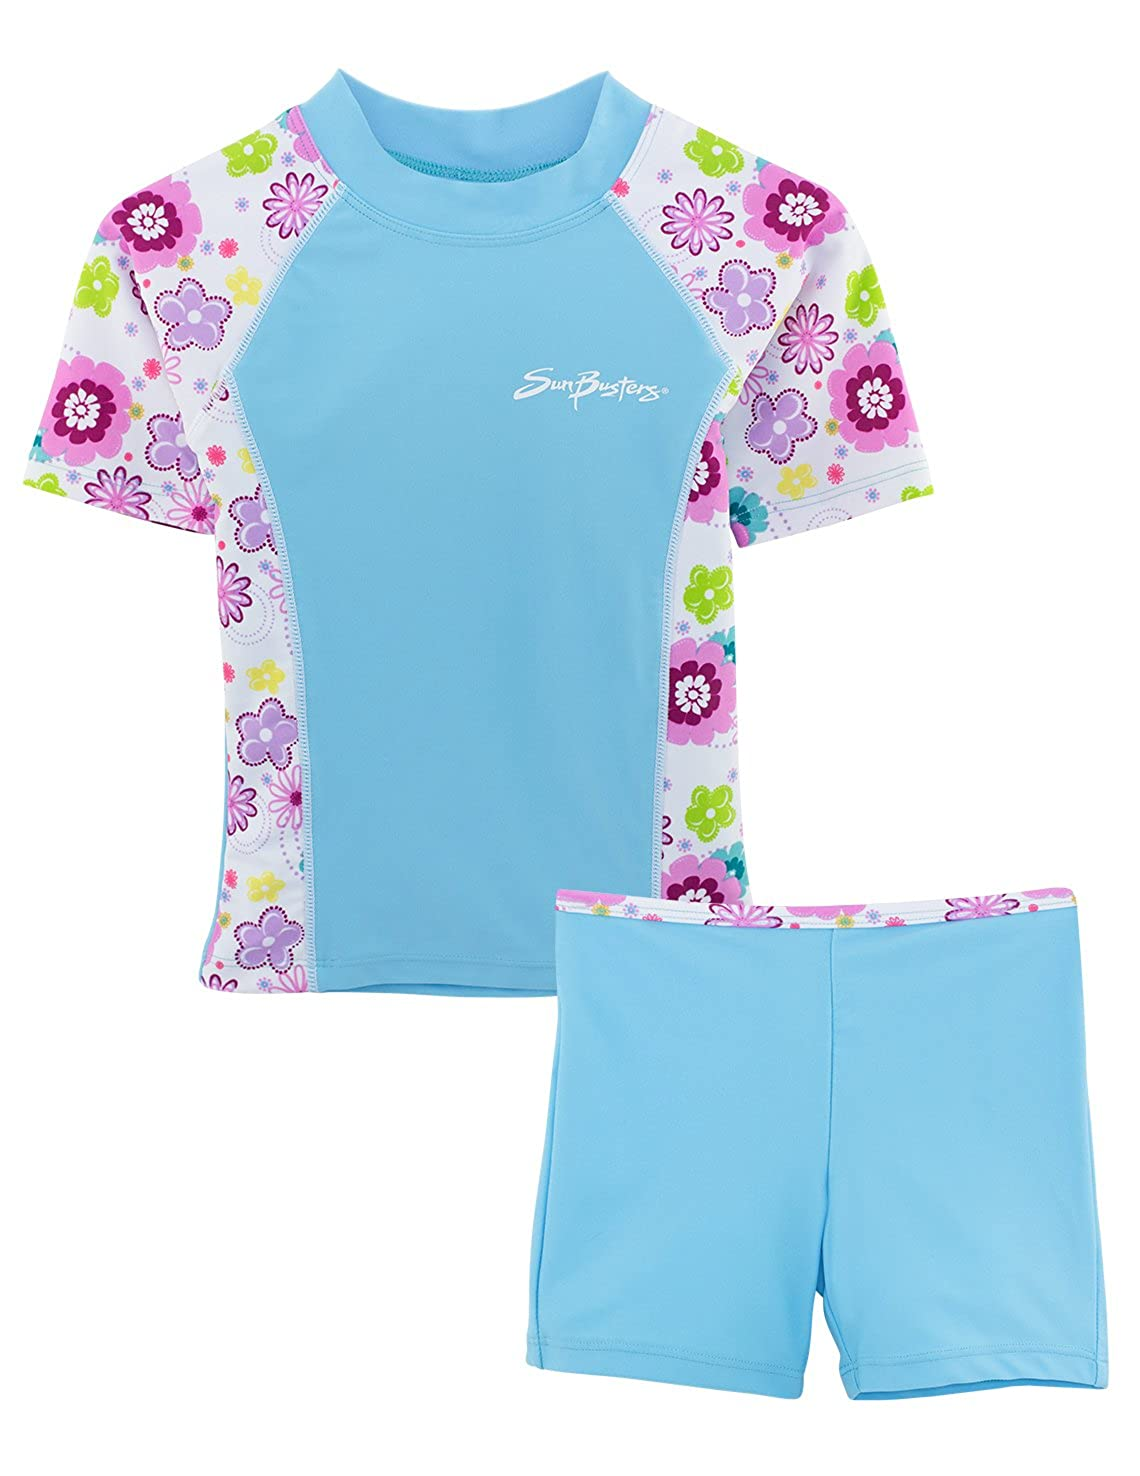 345aa03f89 Amazon.com: SunBusters Girls Fitted Swim Set 12 mos-12 yrs, UPF 50+ Sun  Protection: Rash Guard Sets: Clothing